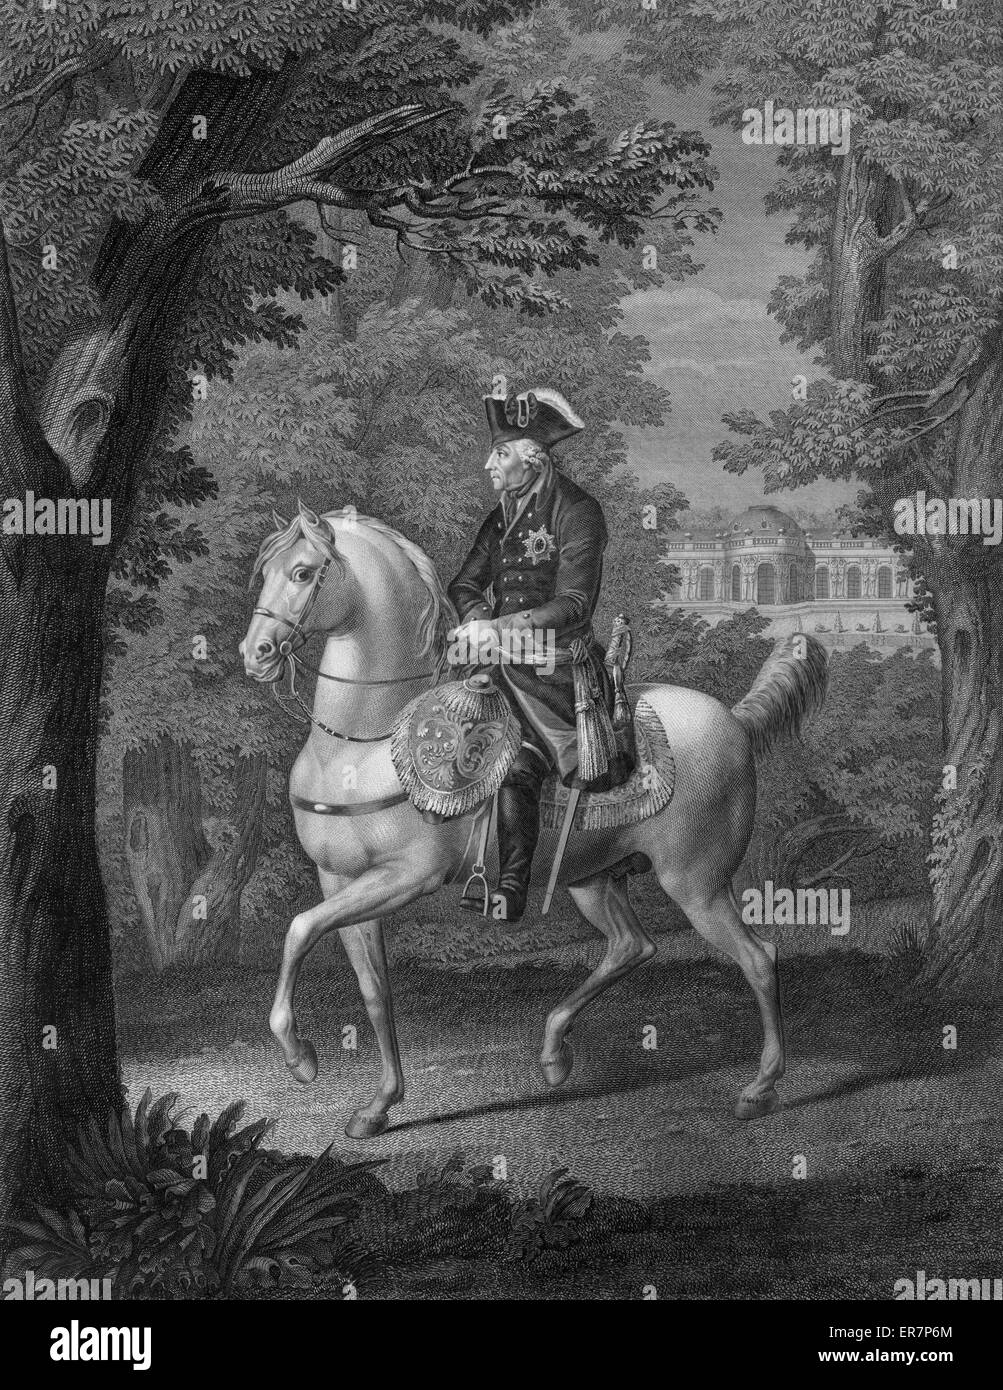 Print showing Frederick II, King of Prussia, on horseback, facing left. Date between 1786 and 1800?. - Stock Image